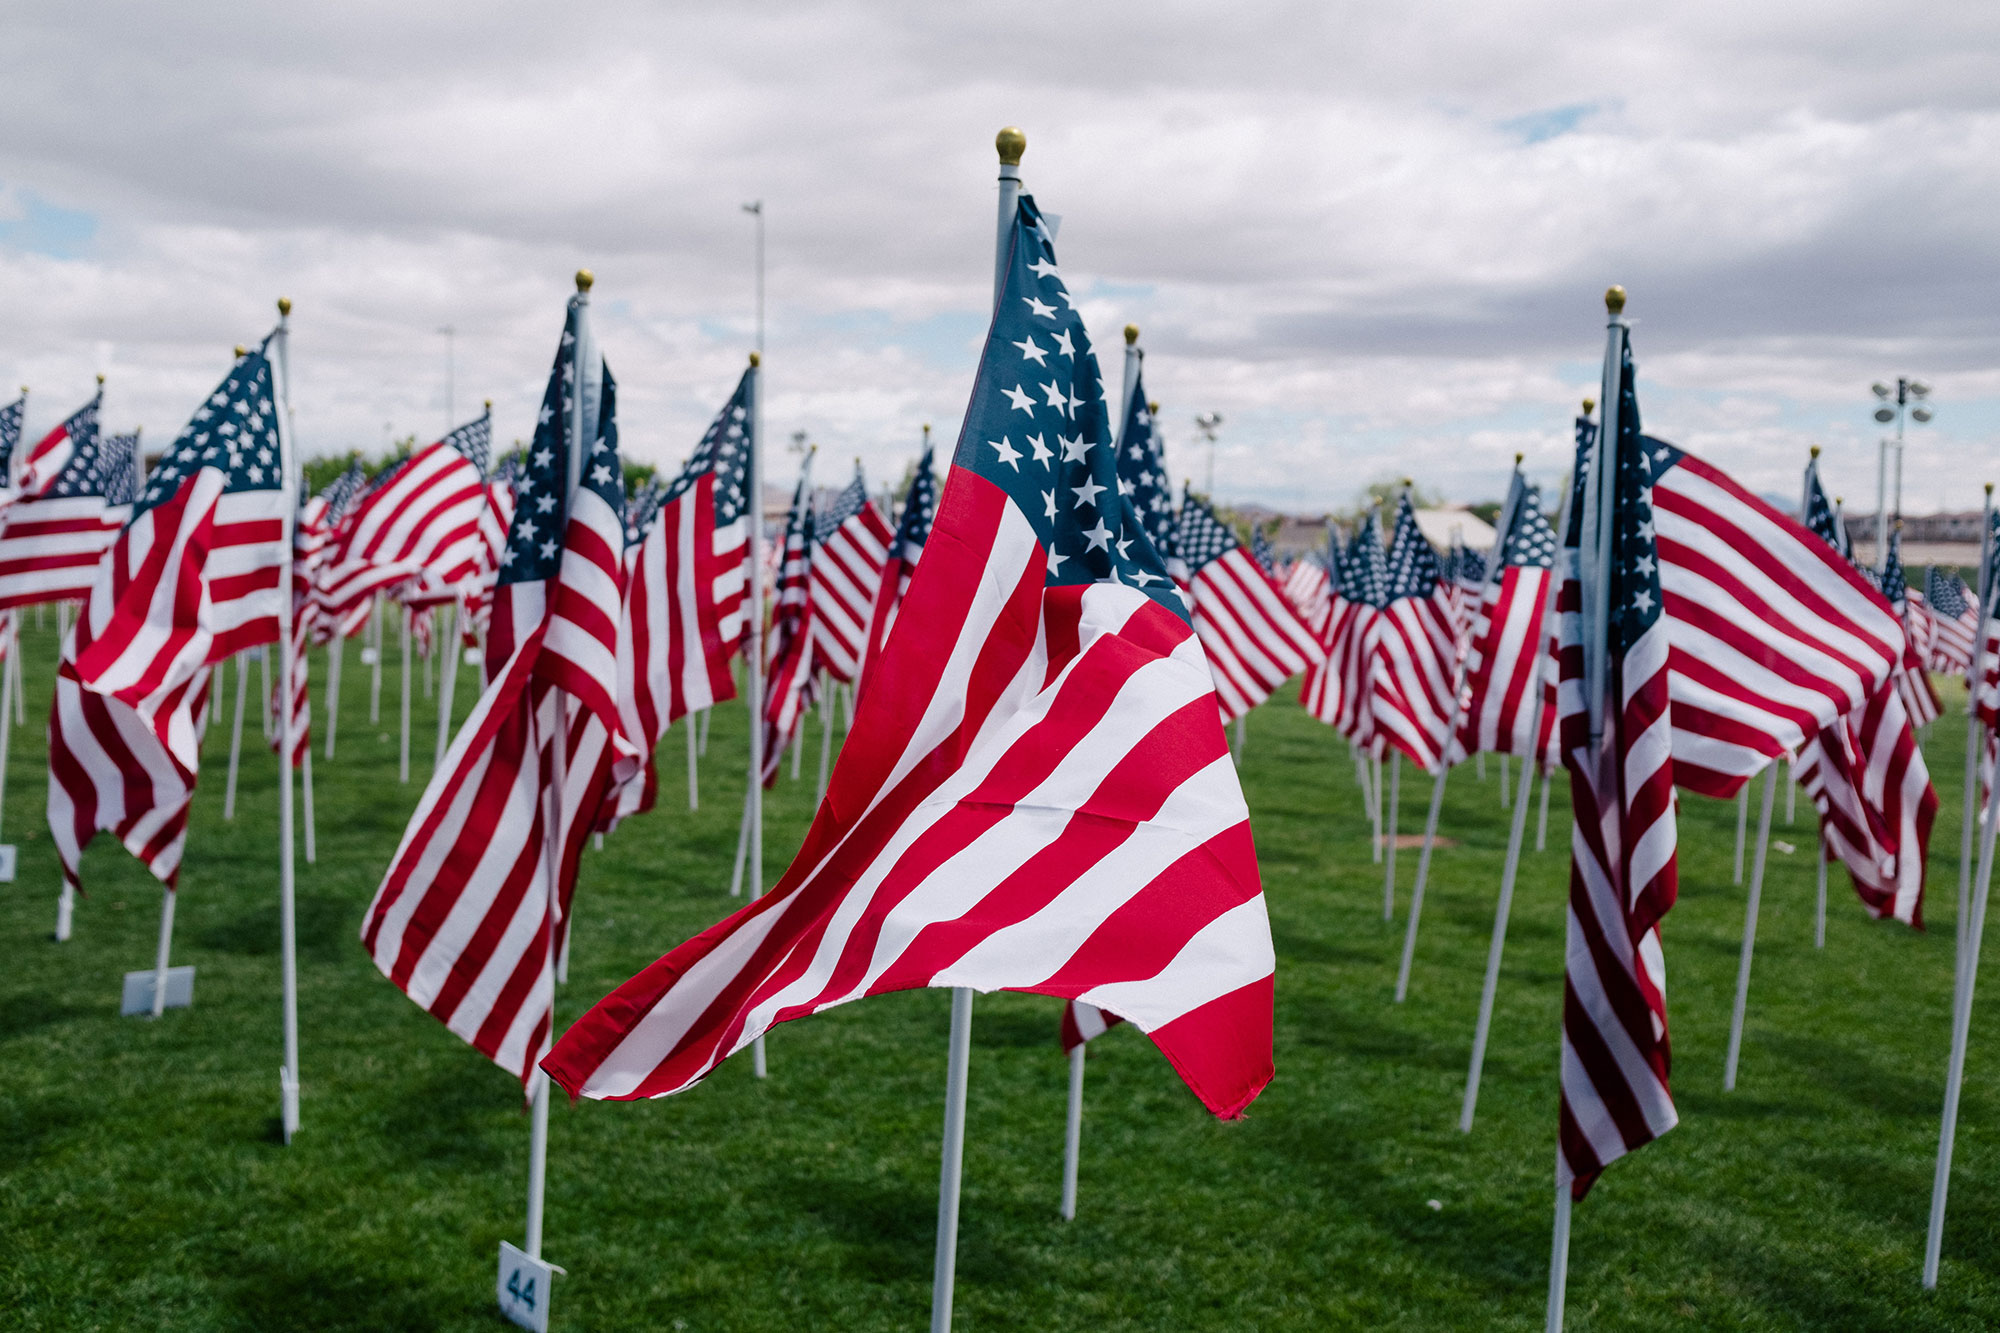 Rows of flags in the grass